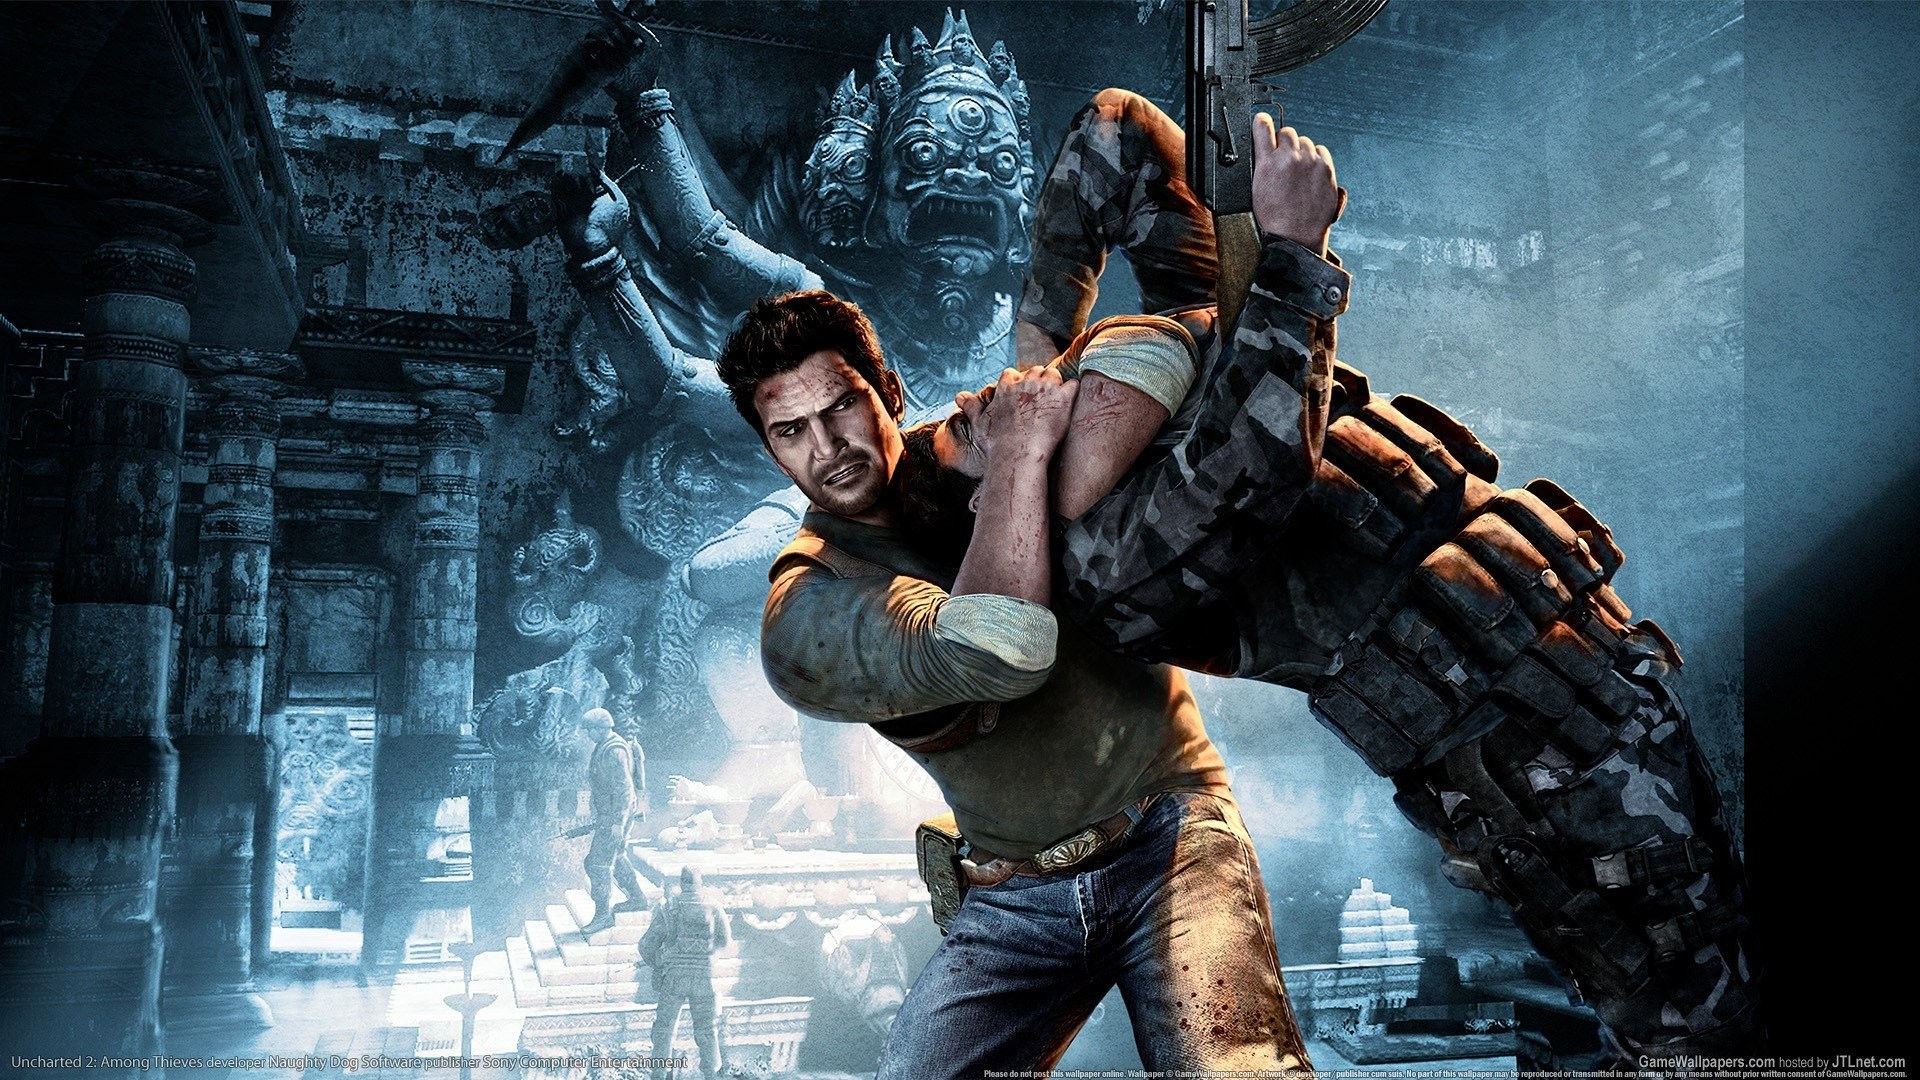 Res: 1920x1080, Video games Uncharted Nathan Drake Uncharted 2 wallpaper |  |  263925 | WallpaperUP